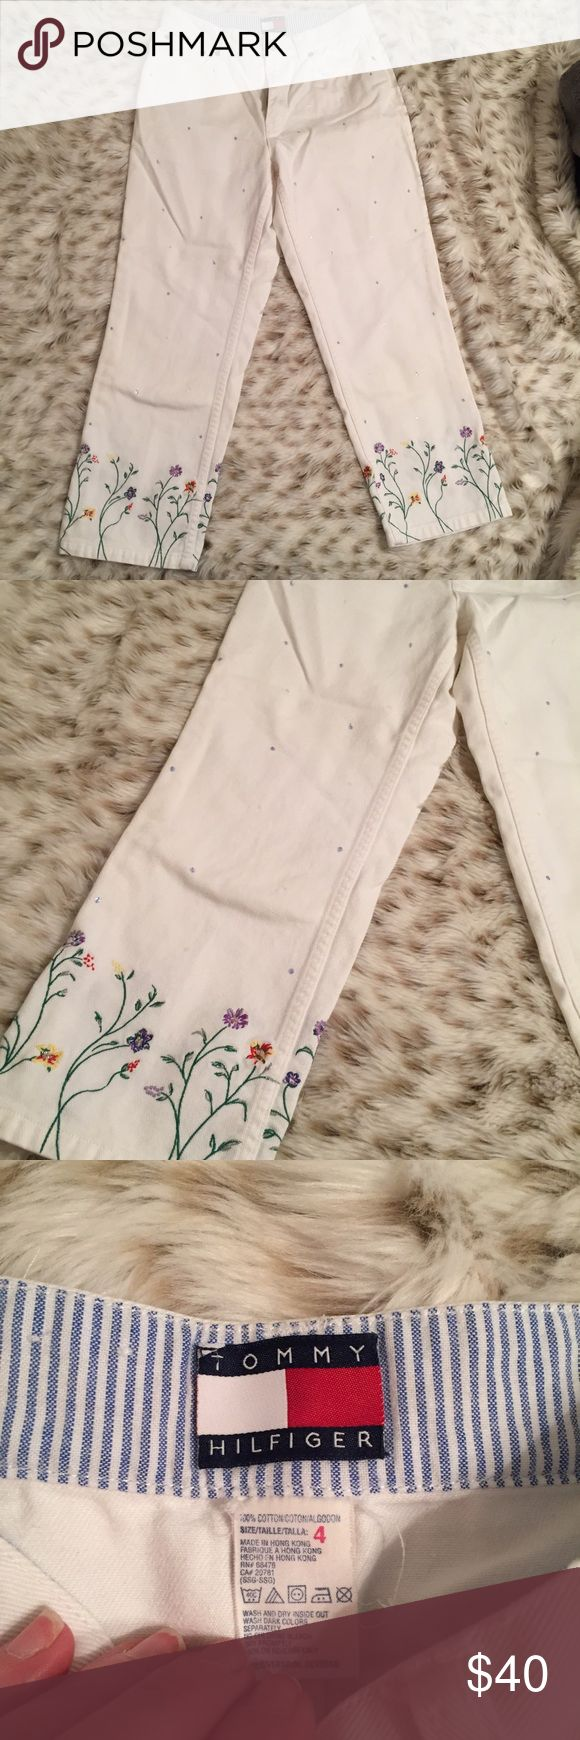 Vintage Tommy Hilfiger Embroidered White Capris Hipster Tommy Hilfiger white Capri with embroidered floral detail and sequins! These are ADORABLE!!!!!!! Perfect for spring!!!! Vintage hipster look! No stains! Inseam is 23 inches! Waist is a size 4! Tommy Hilfiger Pants Capris